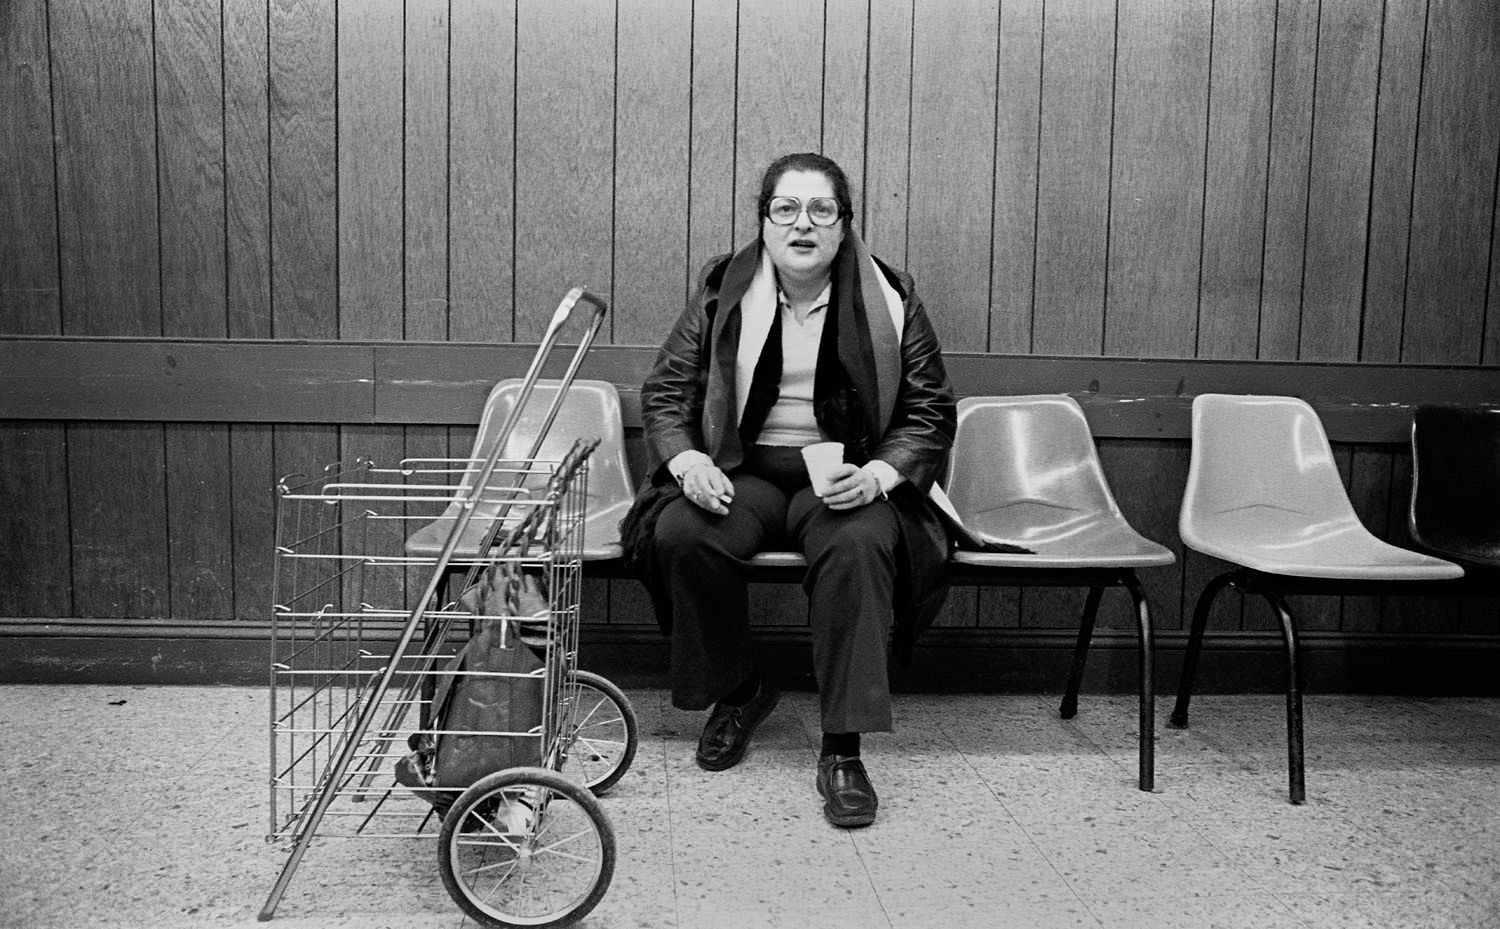 Woman in Laundry Mat, 1970's